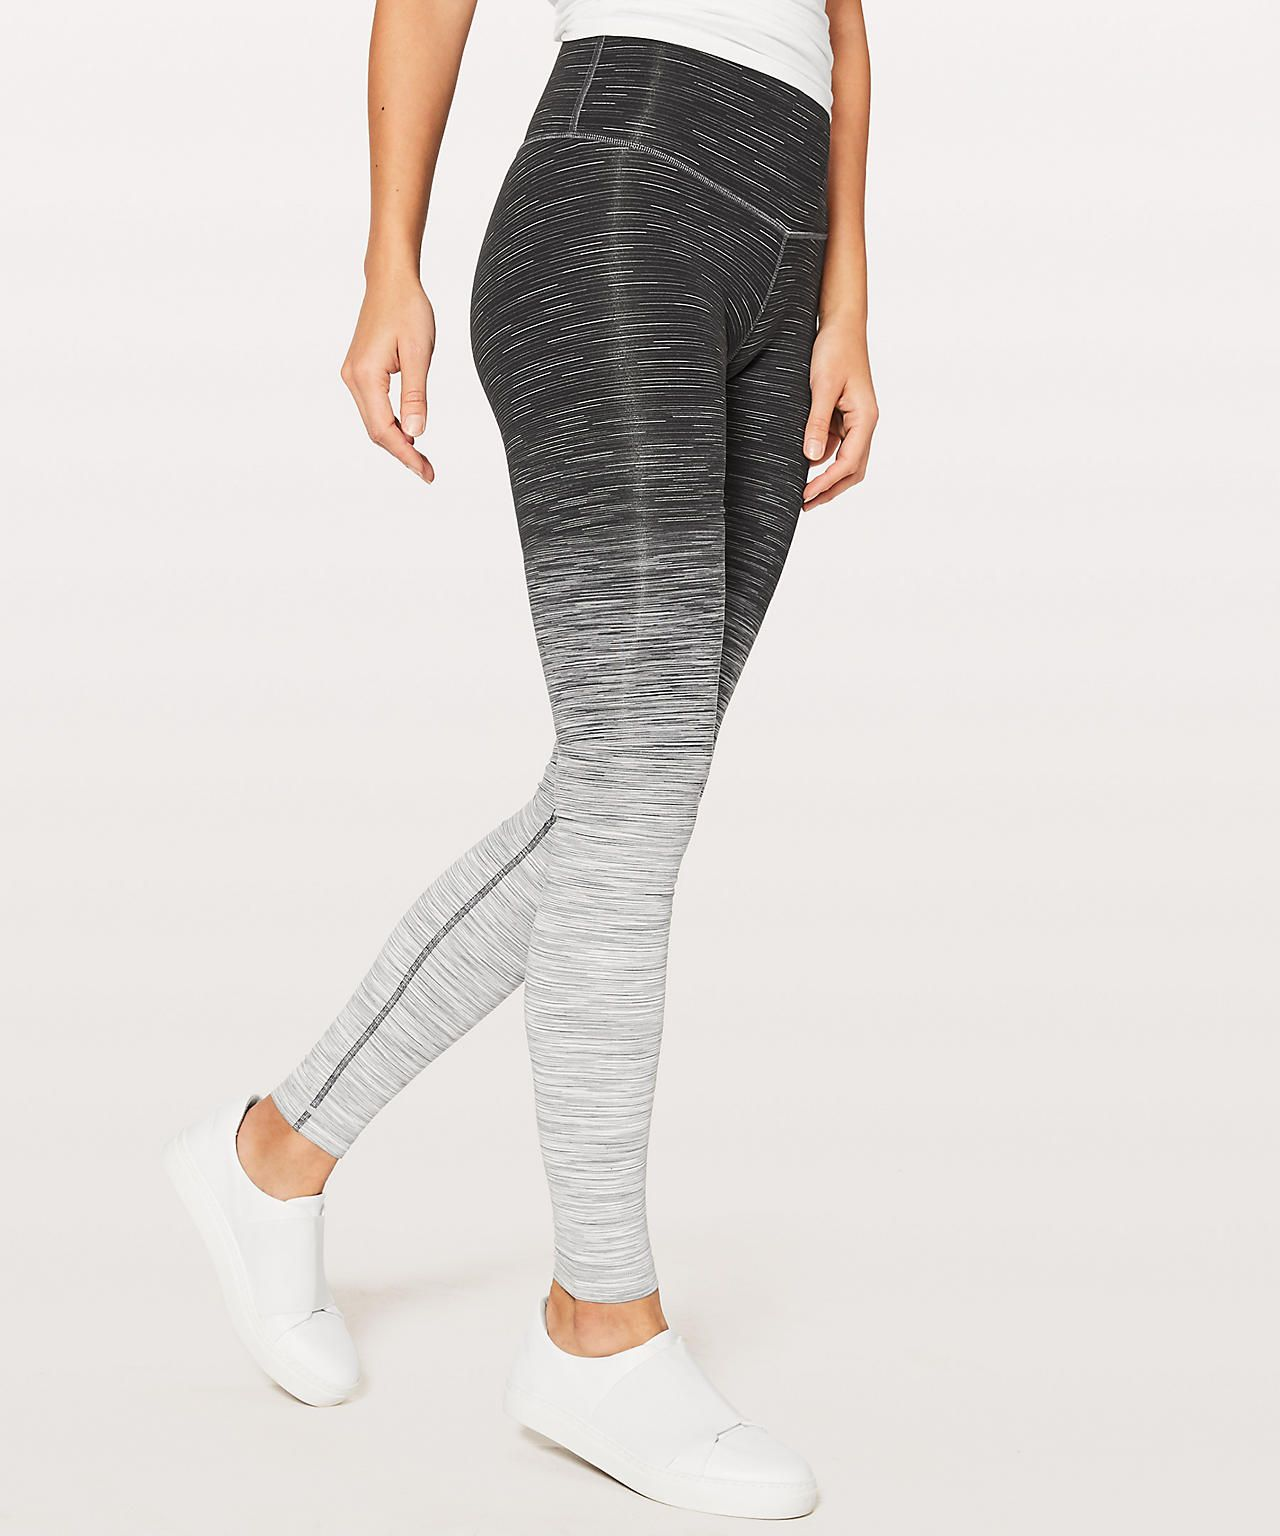 427583dc1c Wunder Under Hi-Rise Tight Ombré Melange $128 (full-on luon) Ombre Space  Dye Black Deep Coal